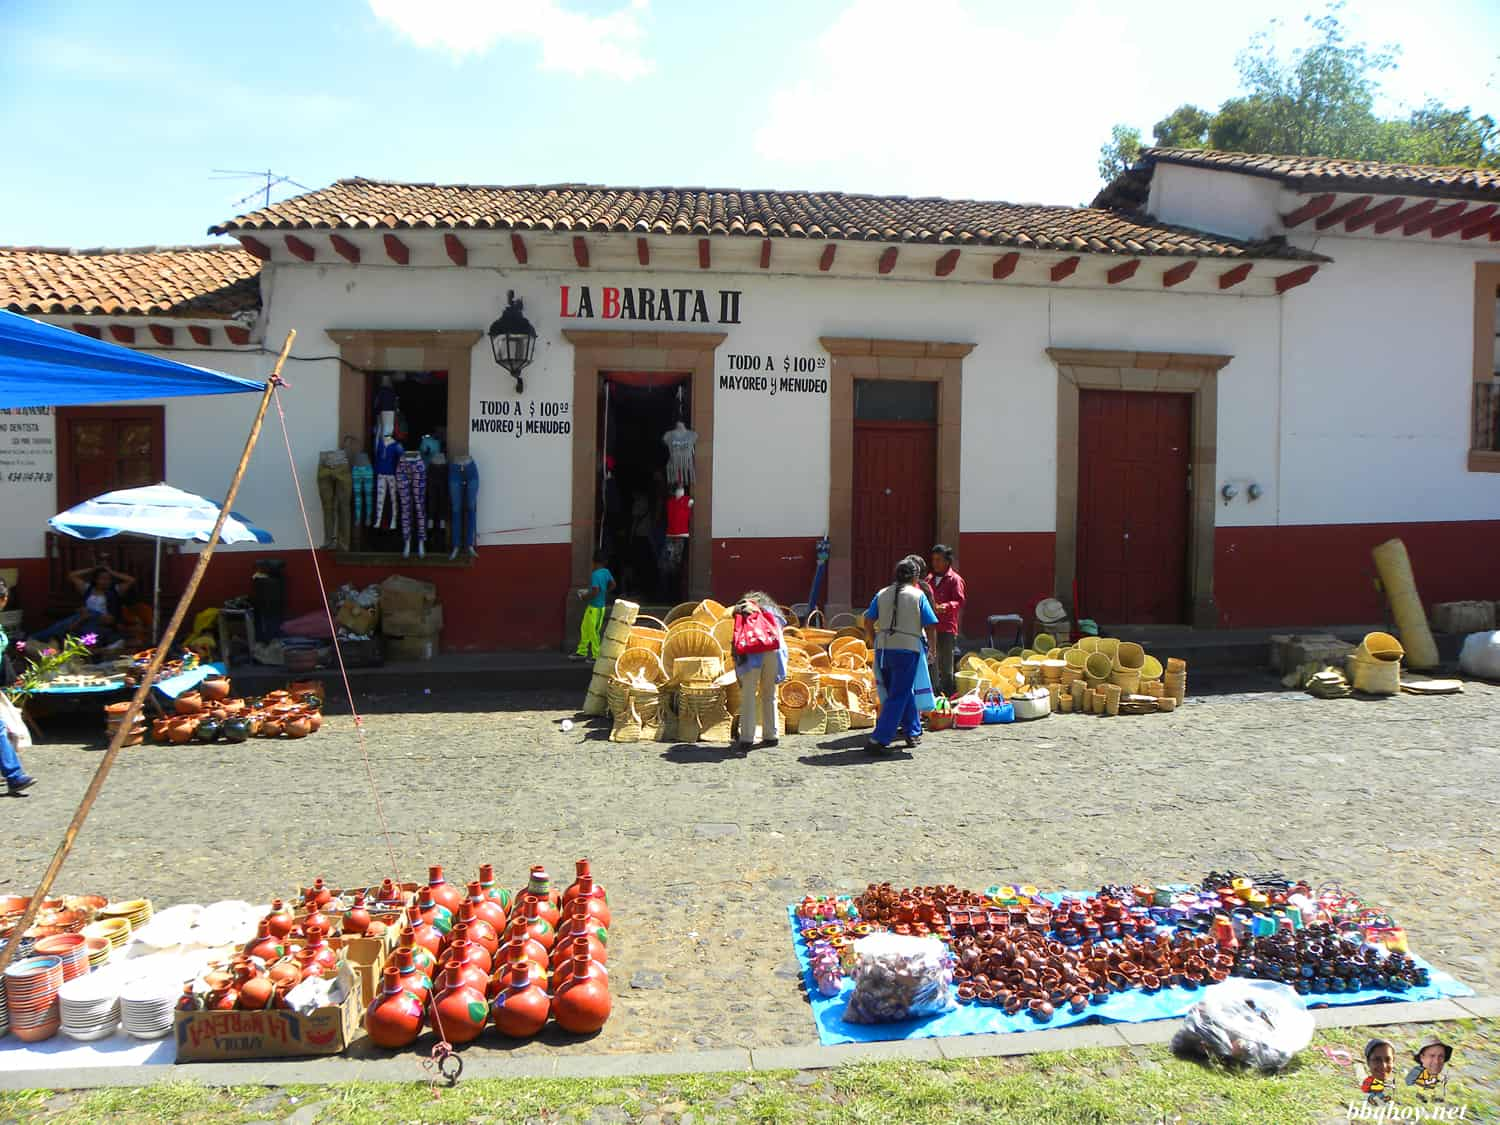 Friday market in Patzcuaro, Mexico (1)